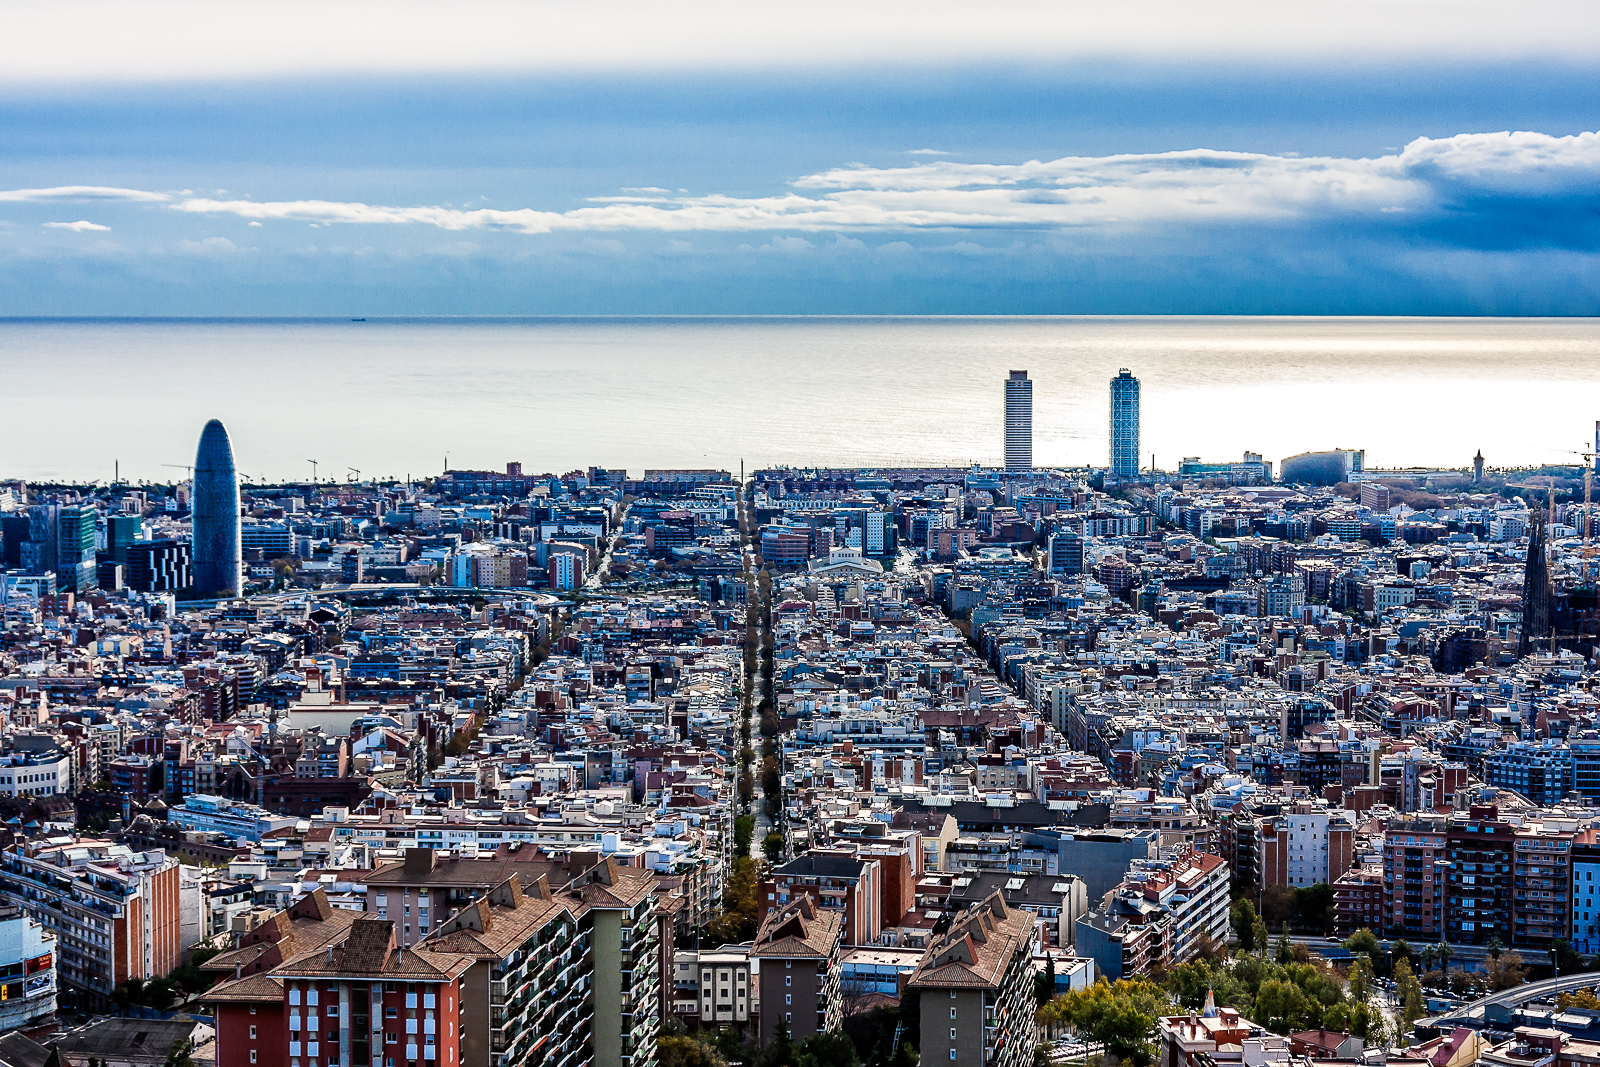 barcelona skyline bcl photography barcelona skyline bcl photography